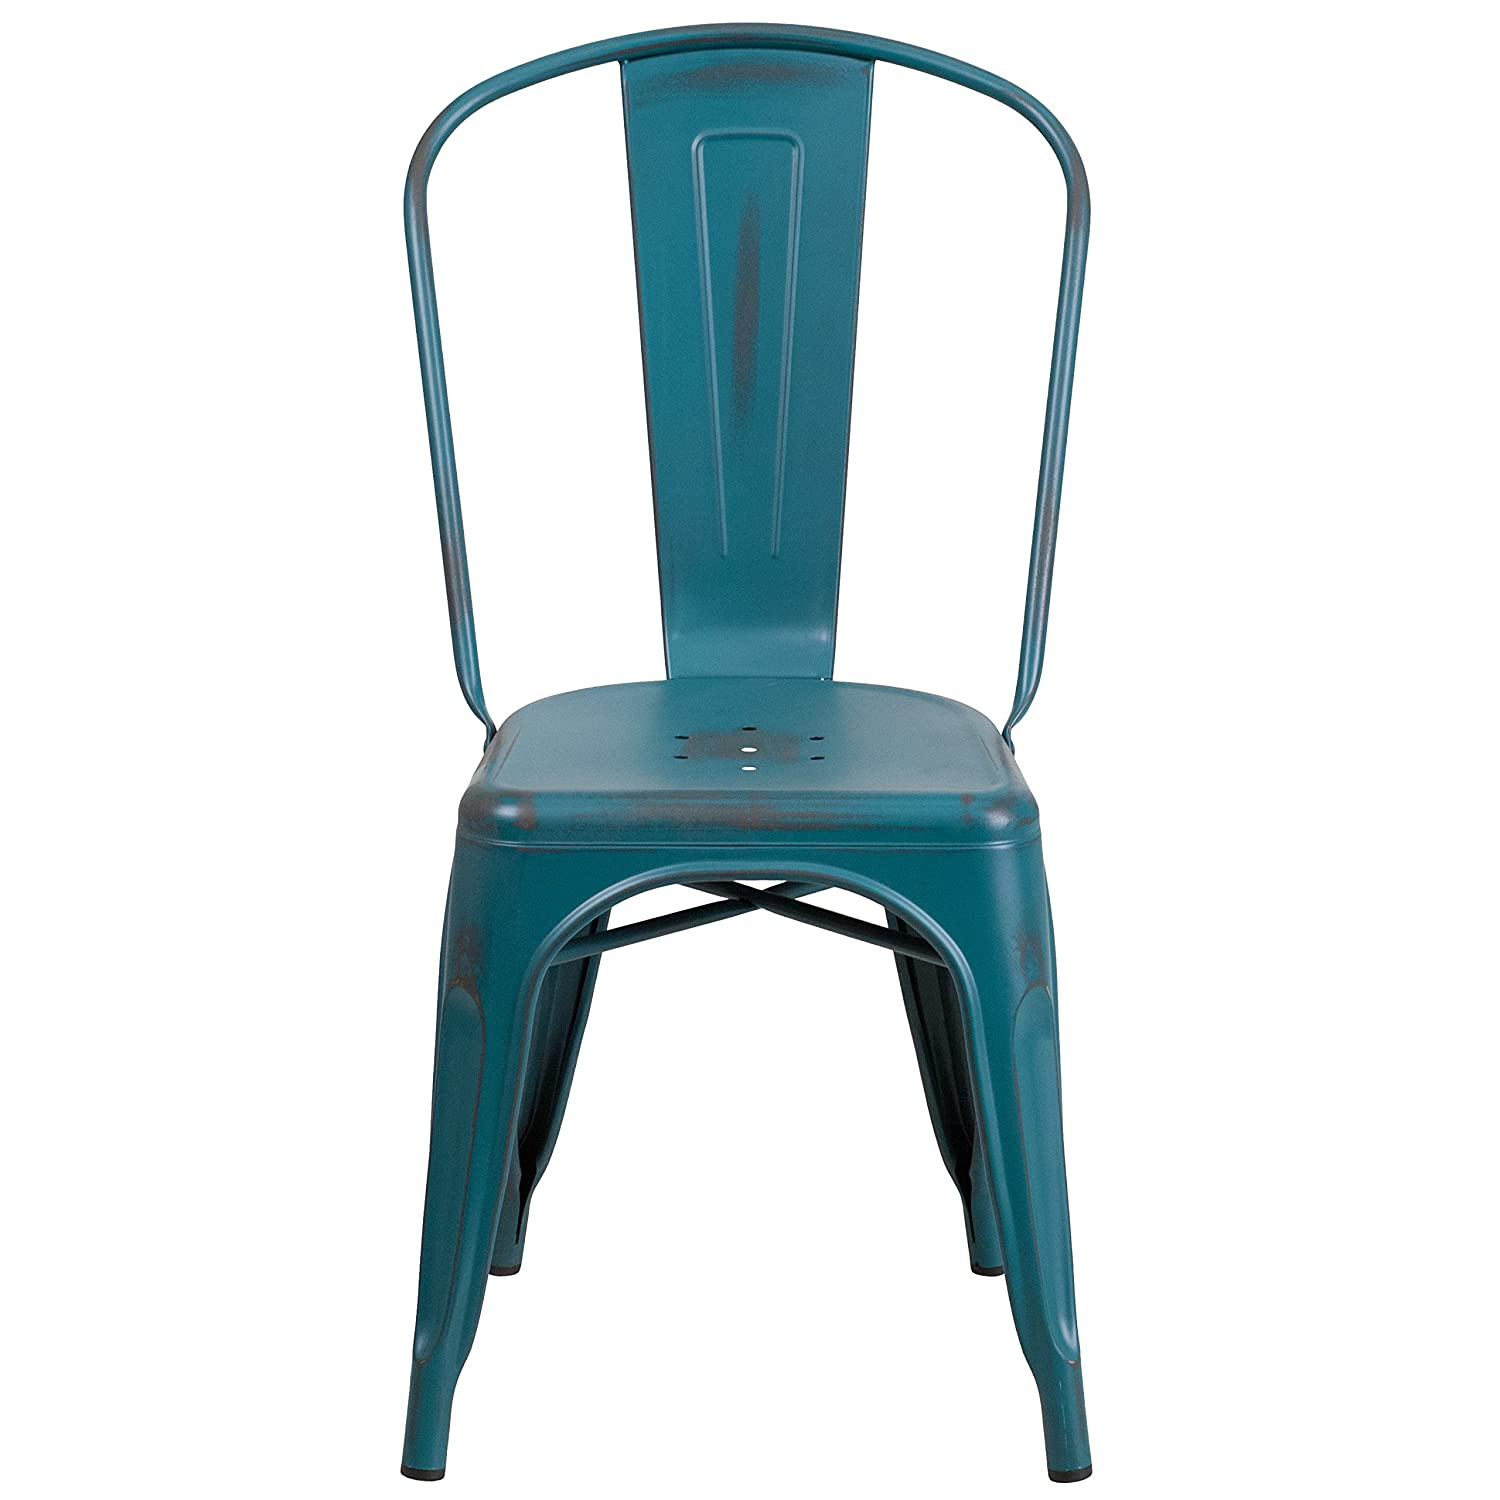 Amazon.com: Flash Furniture Distressed Kelly Blue Teal Metal Indoor Outdoor  Stackable Chair: Kitchen U0026 Dining